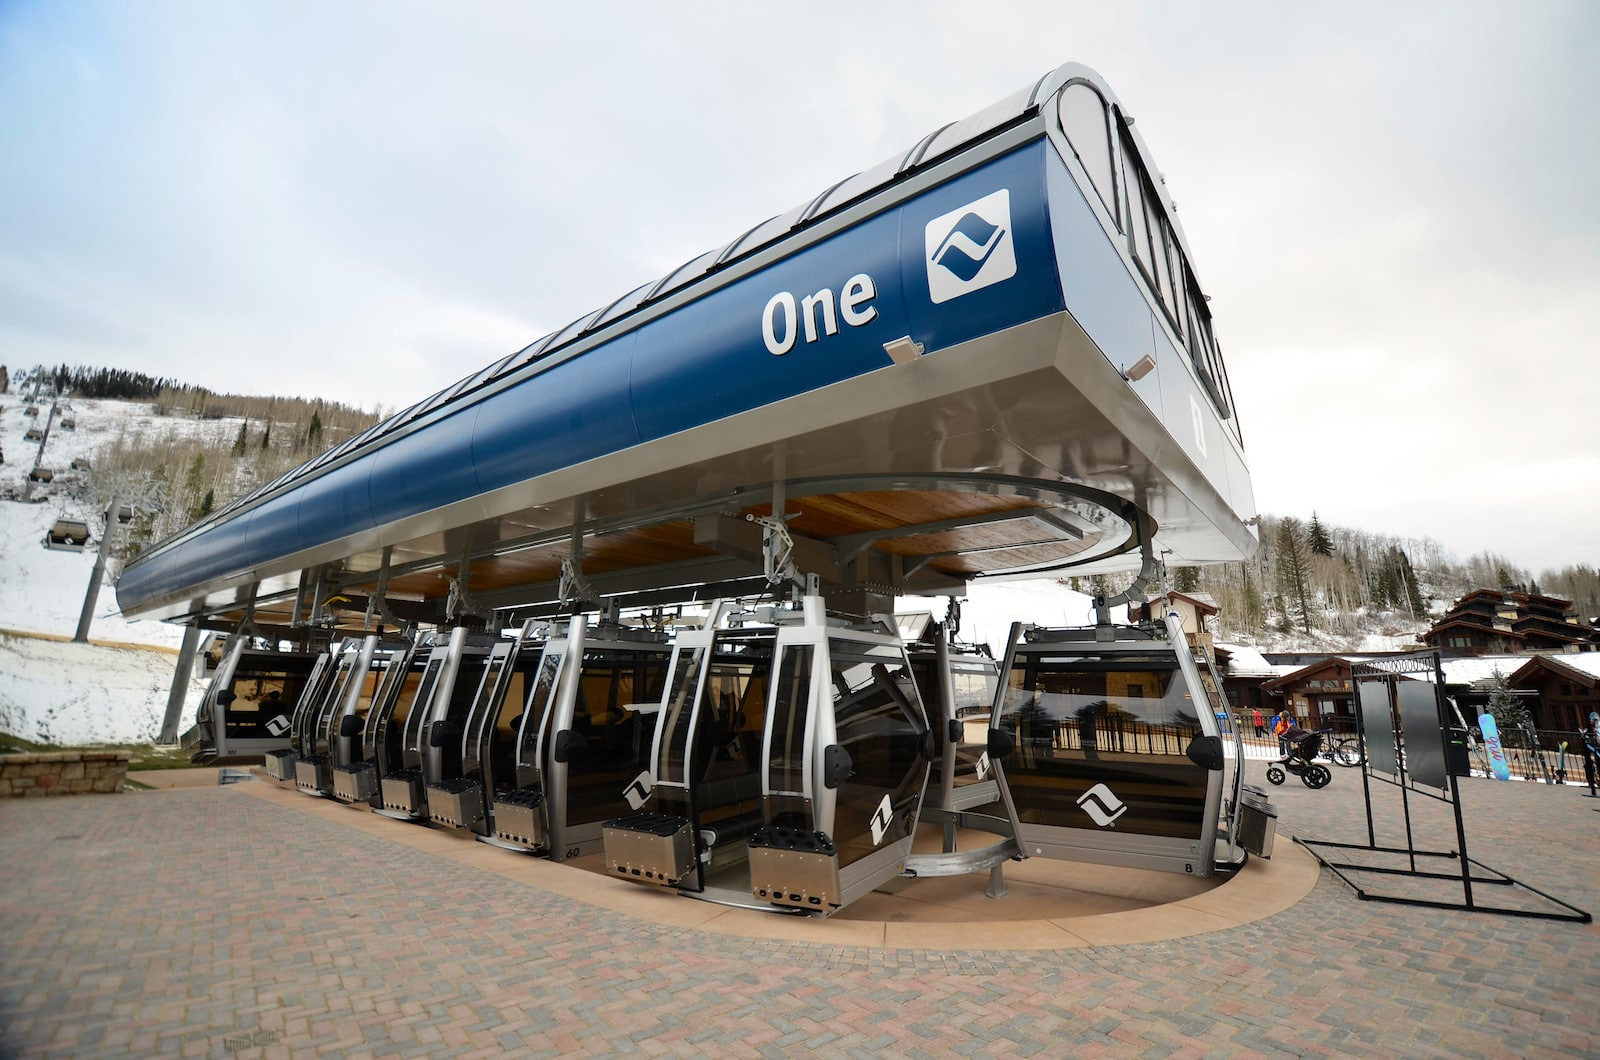 Image of the One Gondola base in Vail, Colorado